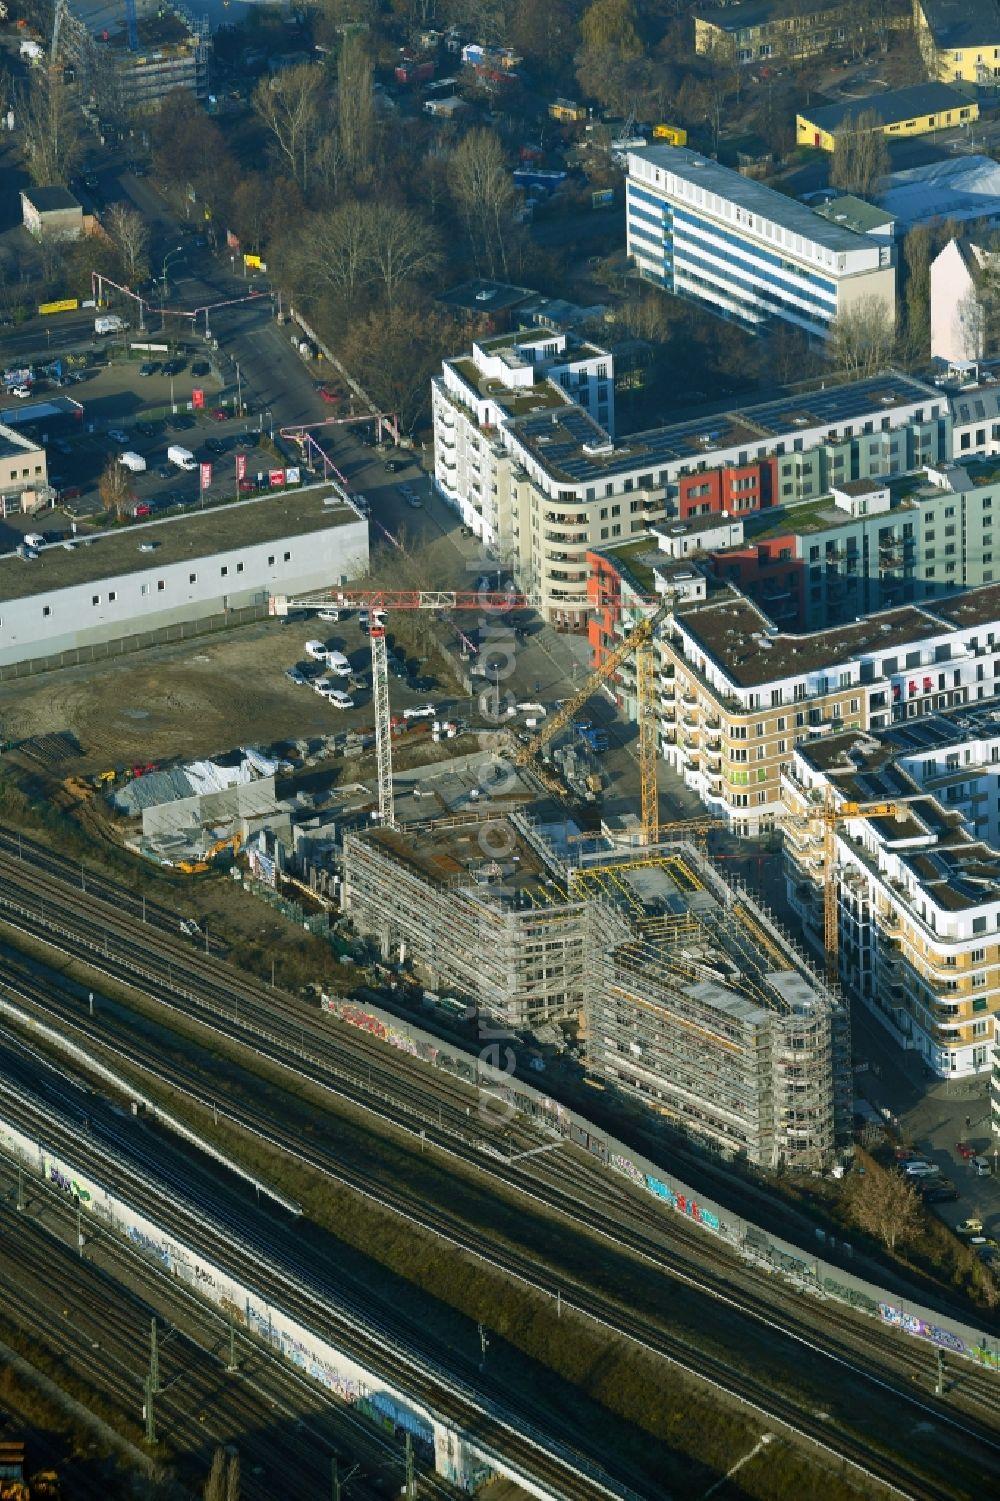 Berlin from the bird's eye view: Construction site for the multi-family residential building Revaler Spitze on Revaler Strasse in the district Friedrichshain in Berlin, Germany